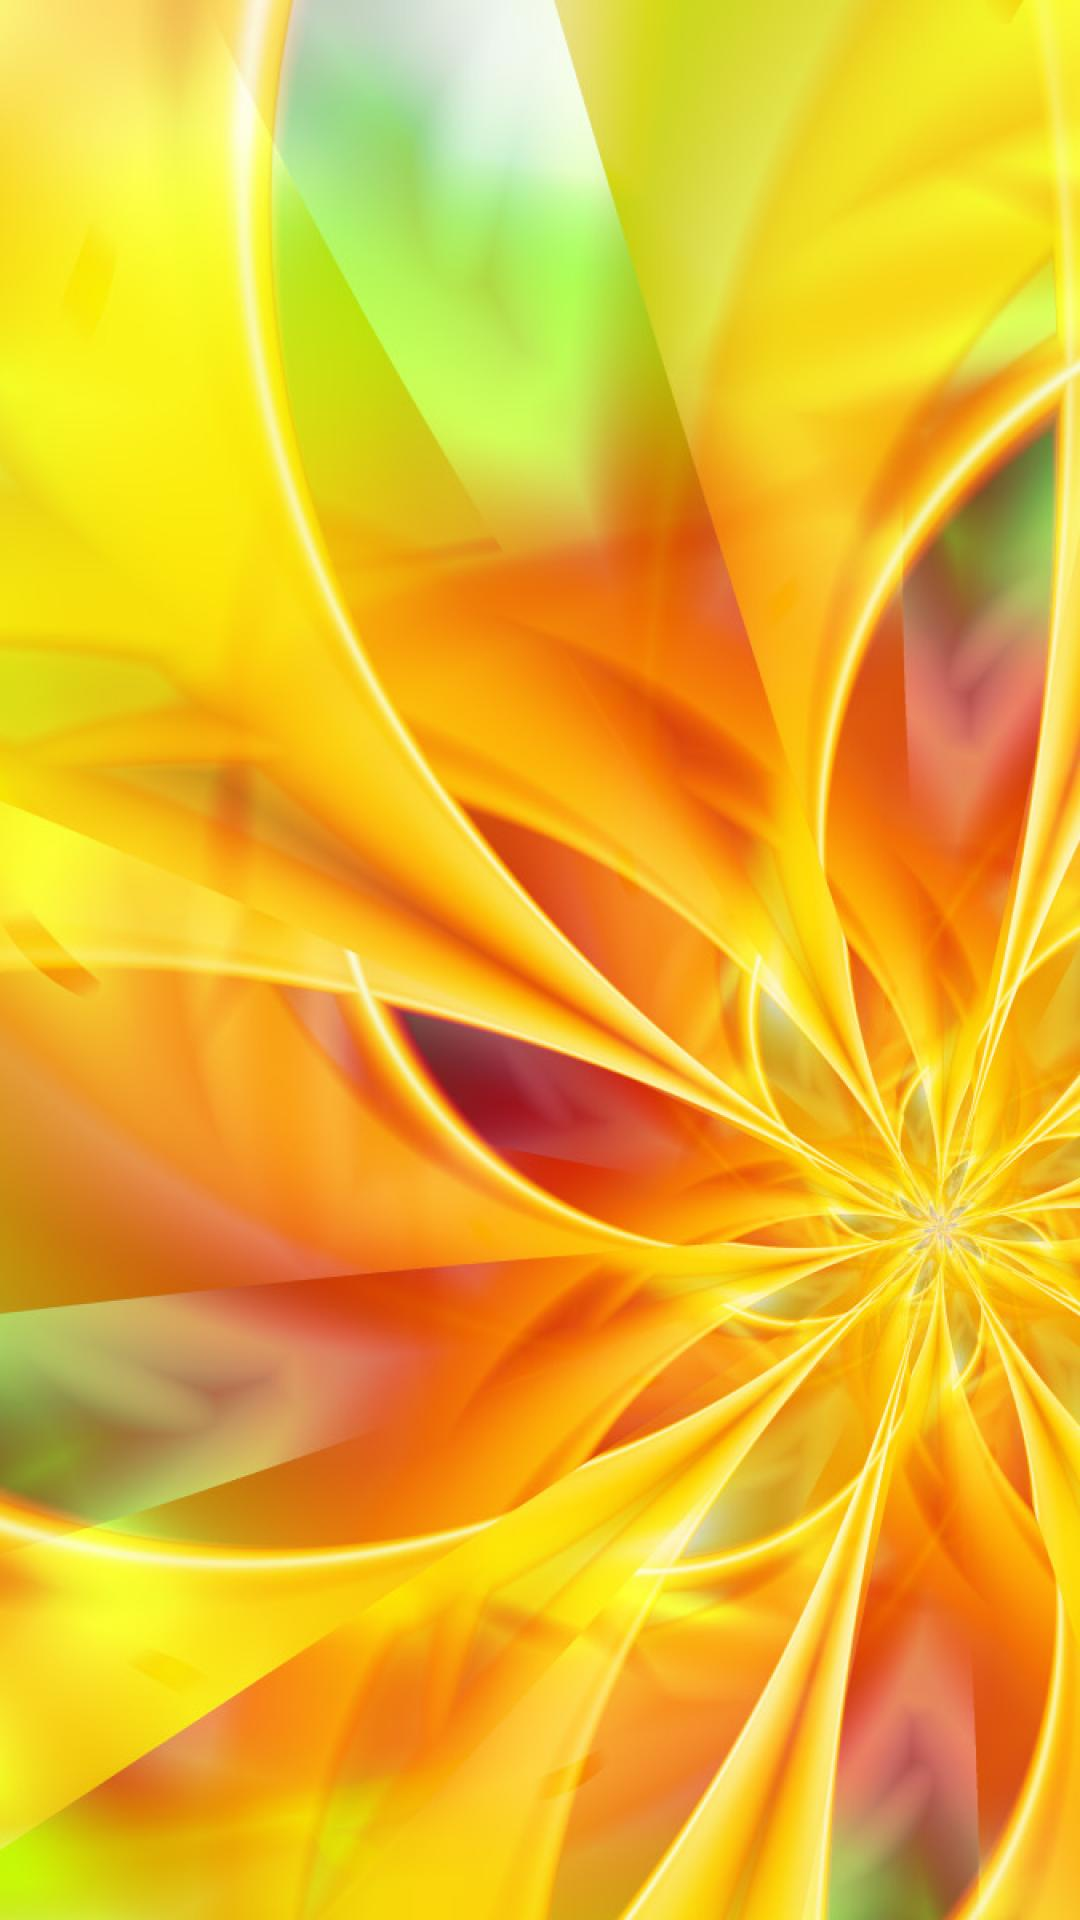 abstract cool yellow flower HD Wallpaper   Abstract Vector 85448 1080x1920